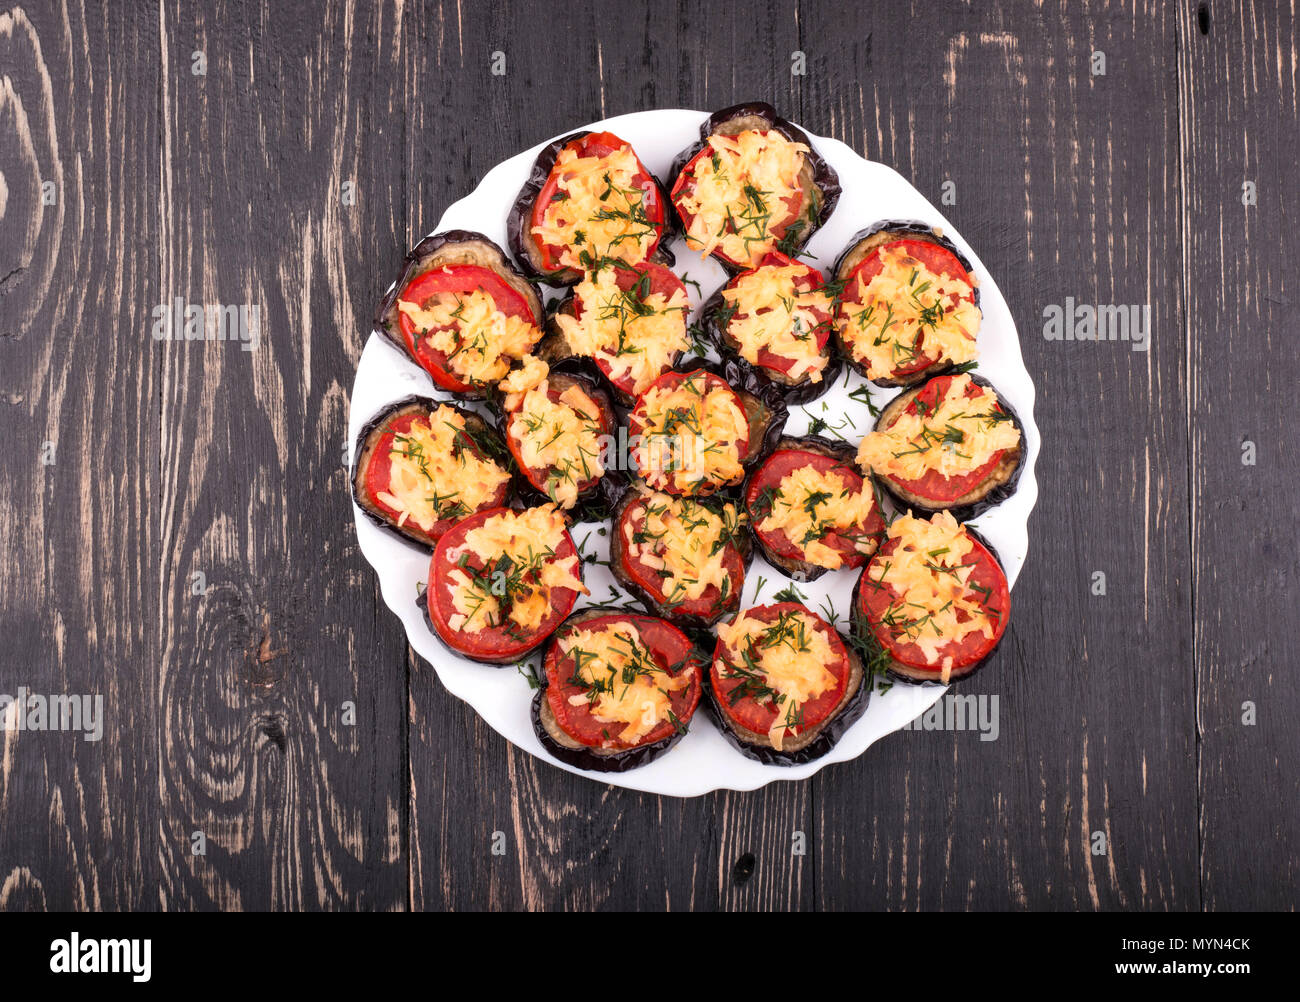 Dish of fried slices of eggplant, tomatoes and sprinkle with cheese and dill in a bowl on a wooden background Stock Photo